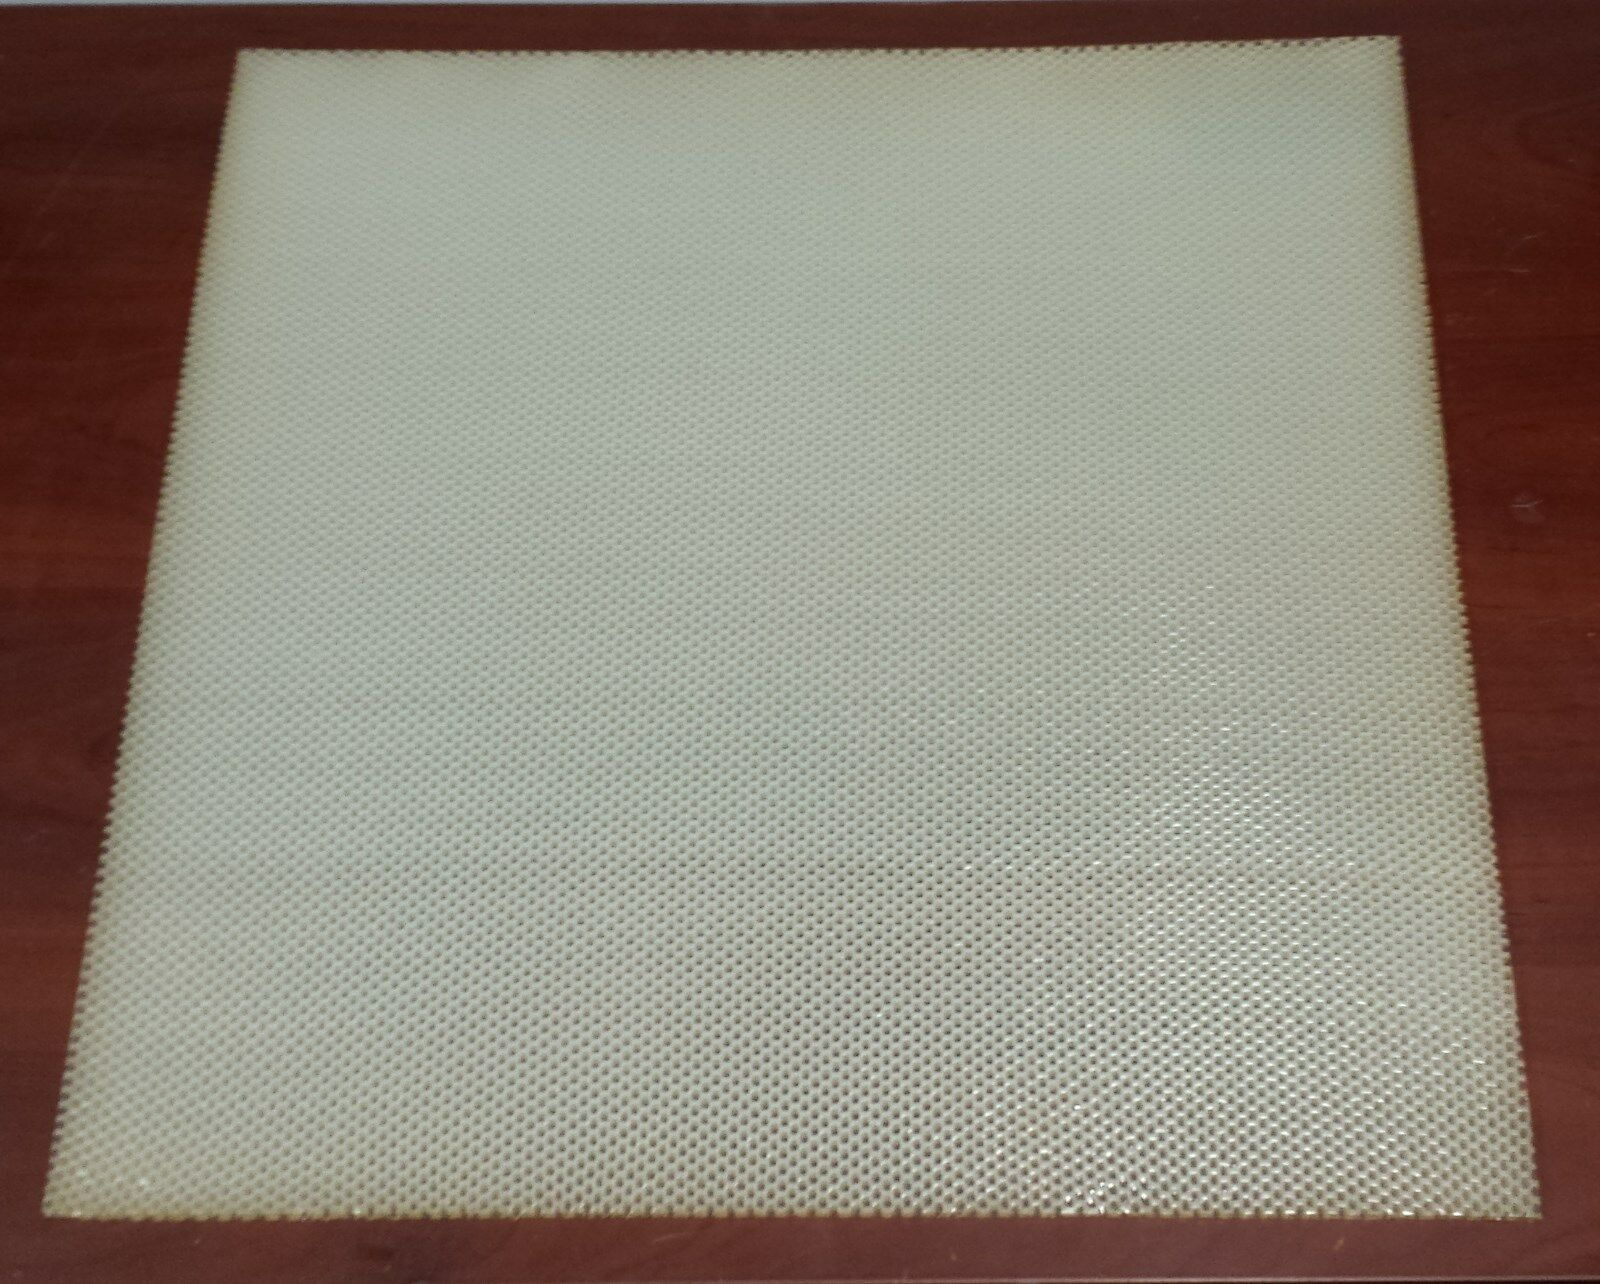 Supracor Stimulite Thermoplastic Honeycomb Impact Absorbing Pad